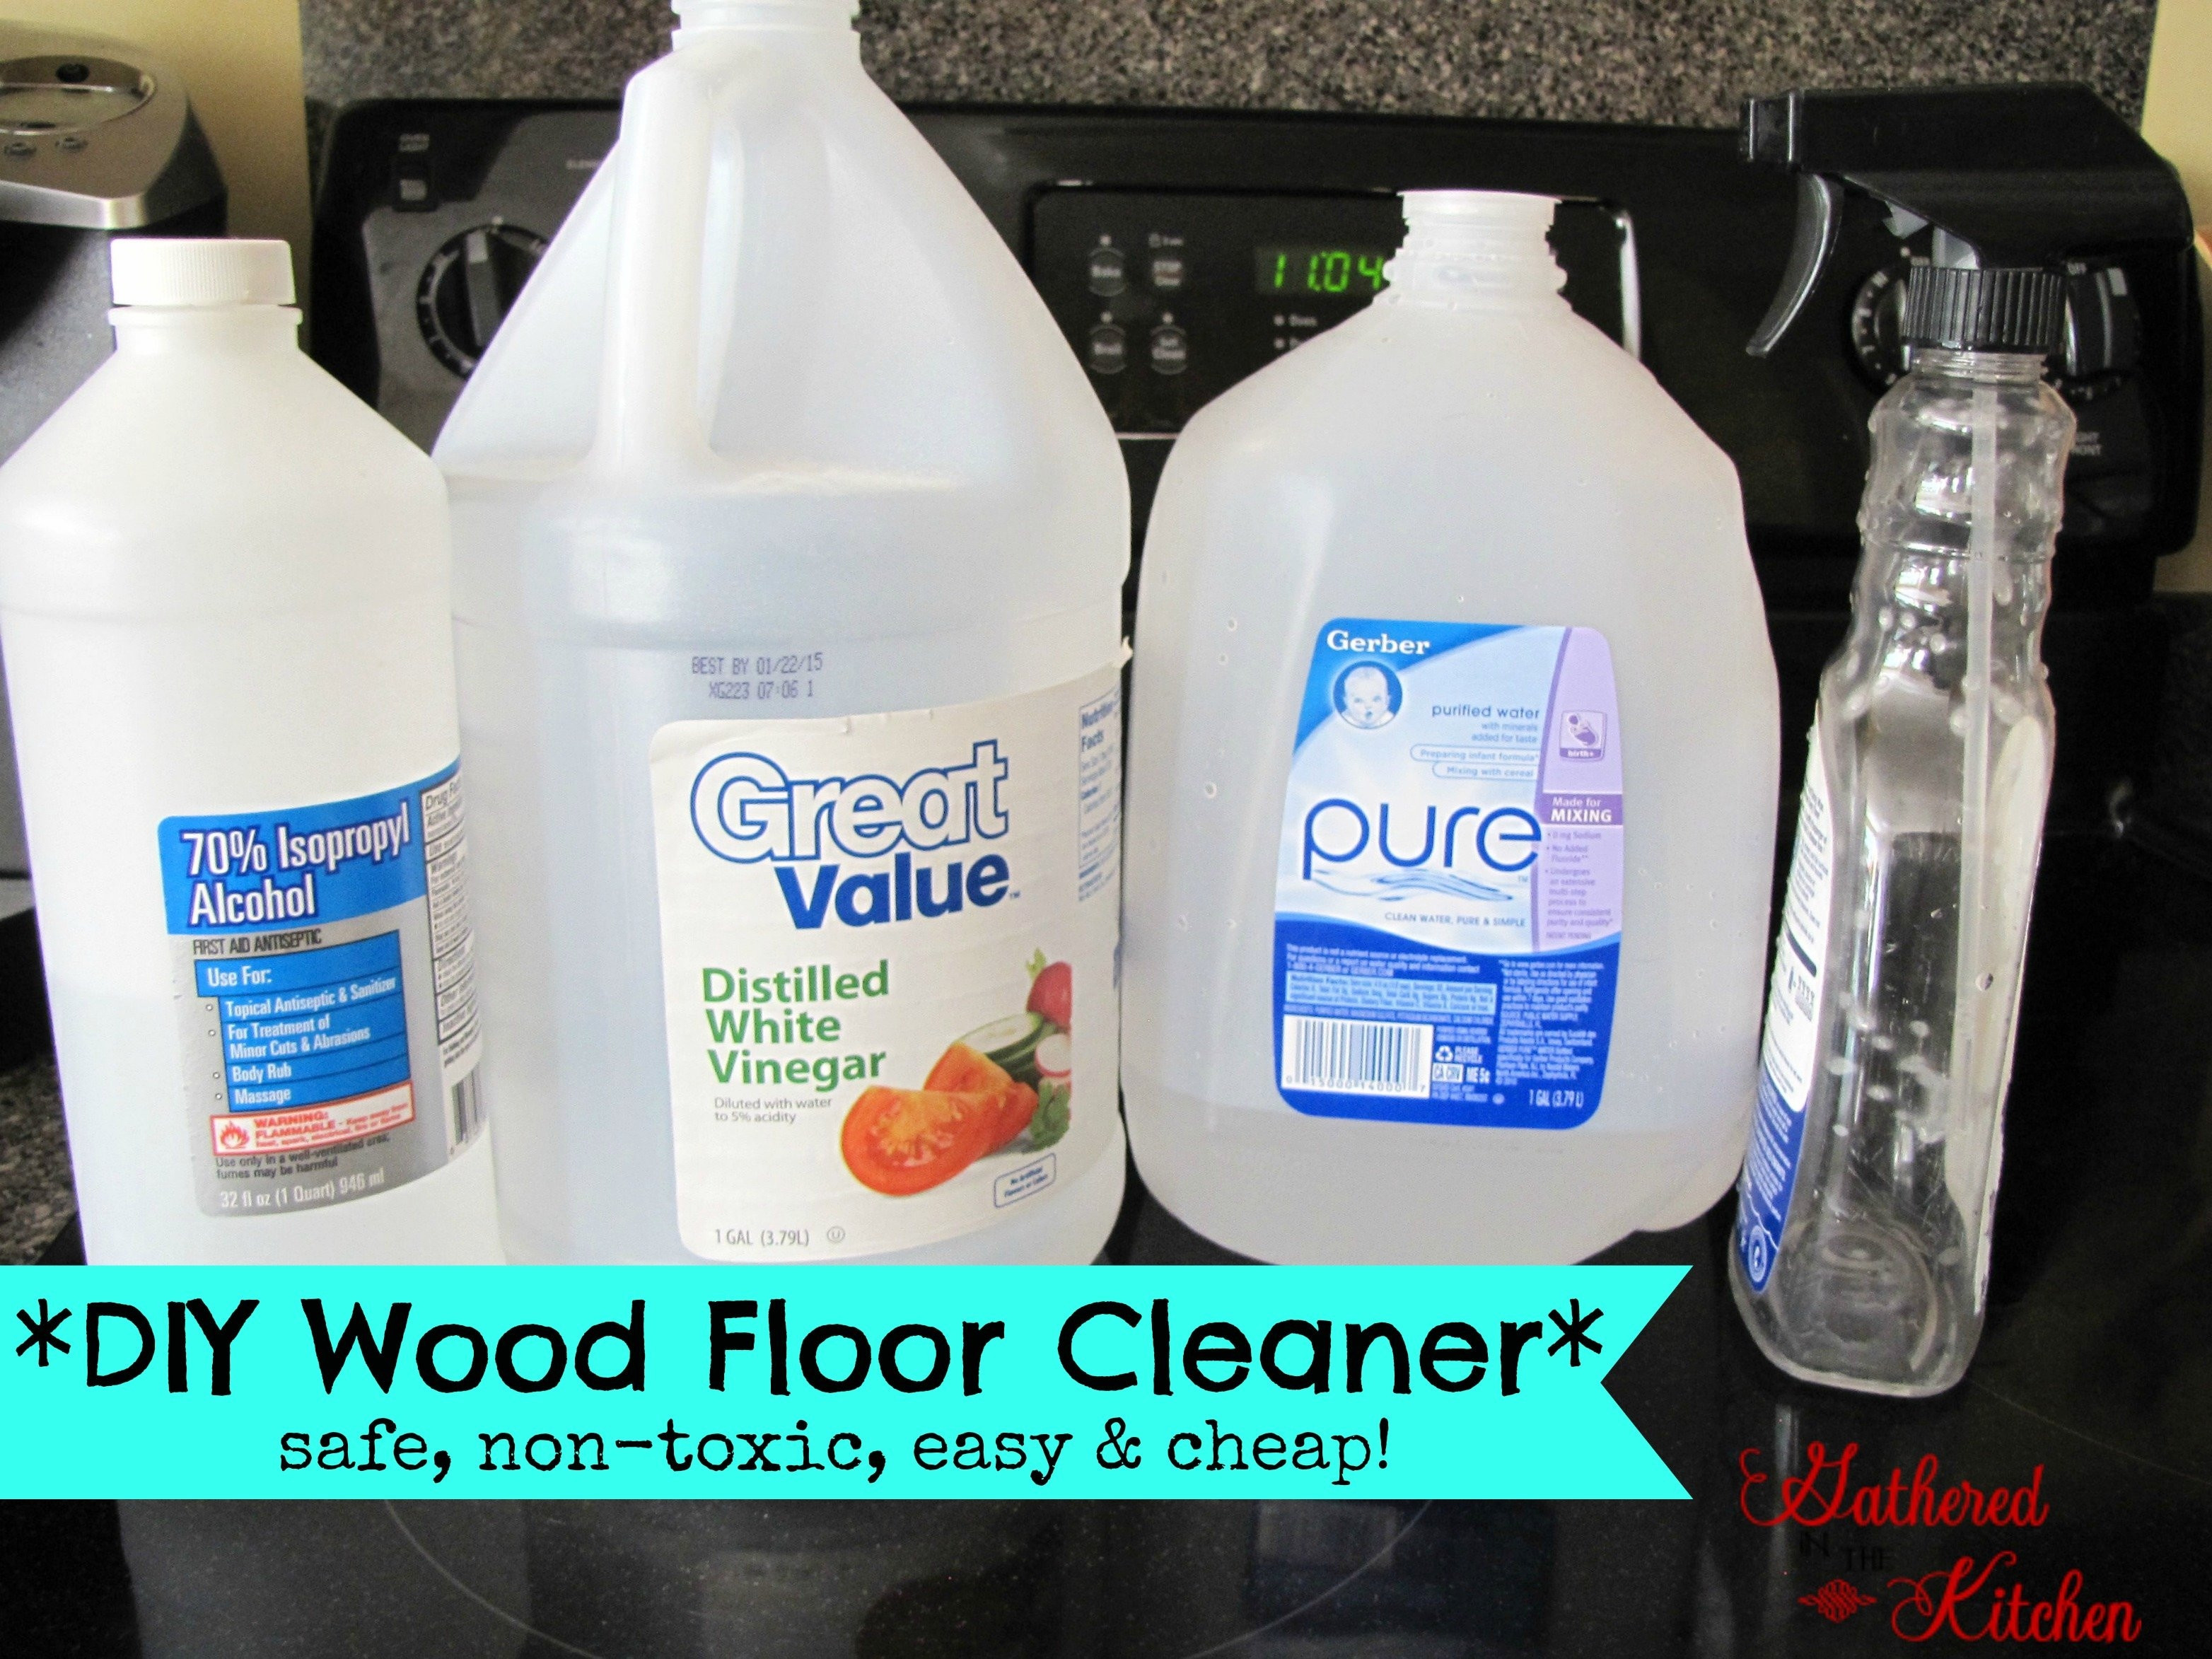 Cleaning Hardwood Floors with Vinegar Of Breathtaking Clean Wood Floors with Vinegar Beautiful Floors are Regarding Breathtaking Clean Wood Floor with Vinegar Washing Laminate and Water Idea Cleaning Hardwood Decoration In Size